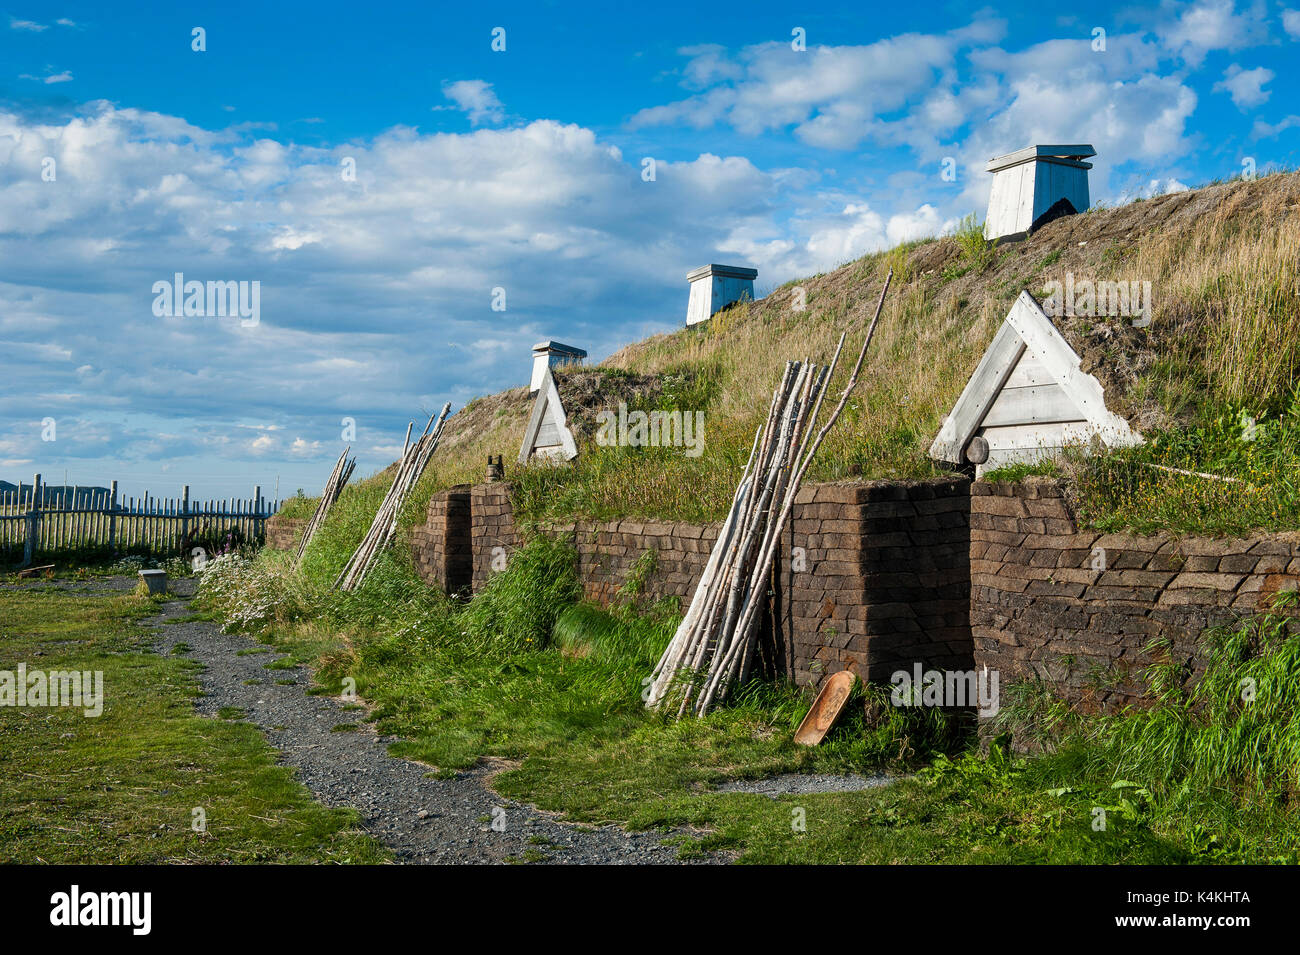 Norse settlement, Unesco world heritage, L´Anse aux Meadows, the only viking sight in America, Newfoundland, Canada - Stock Image